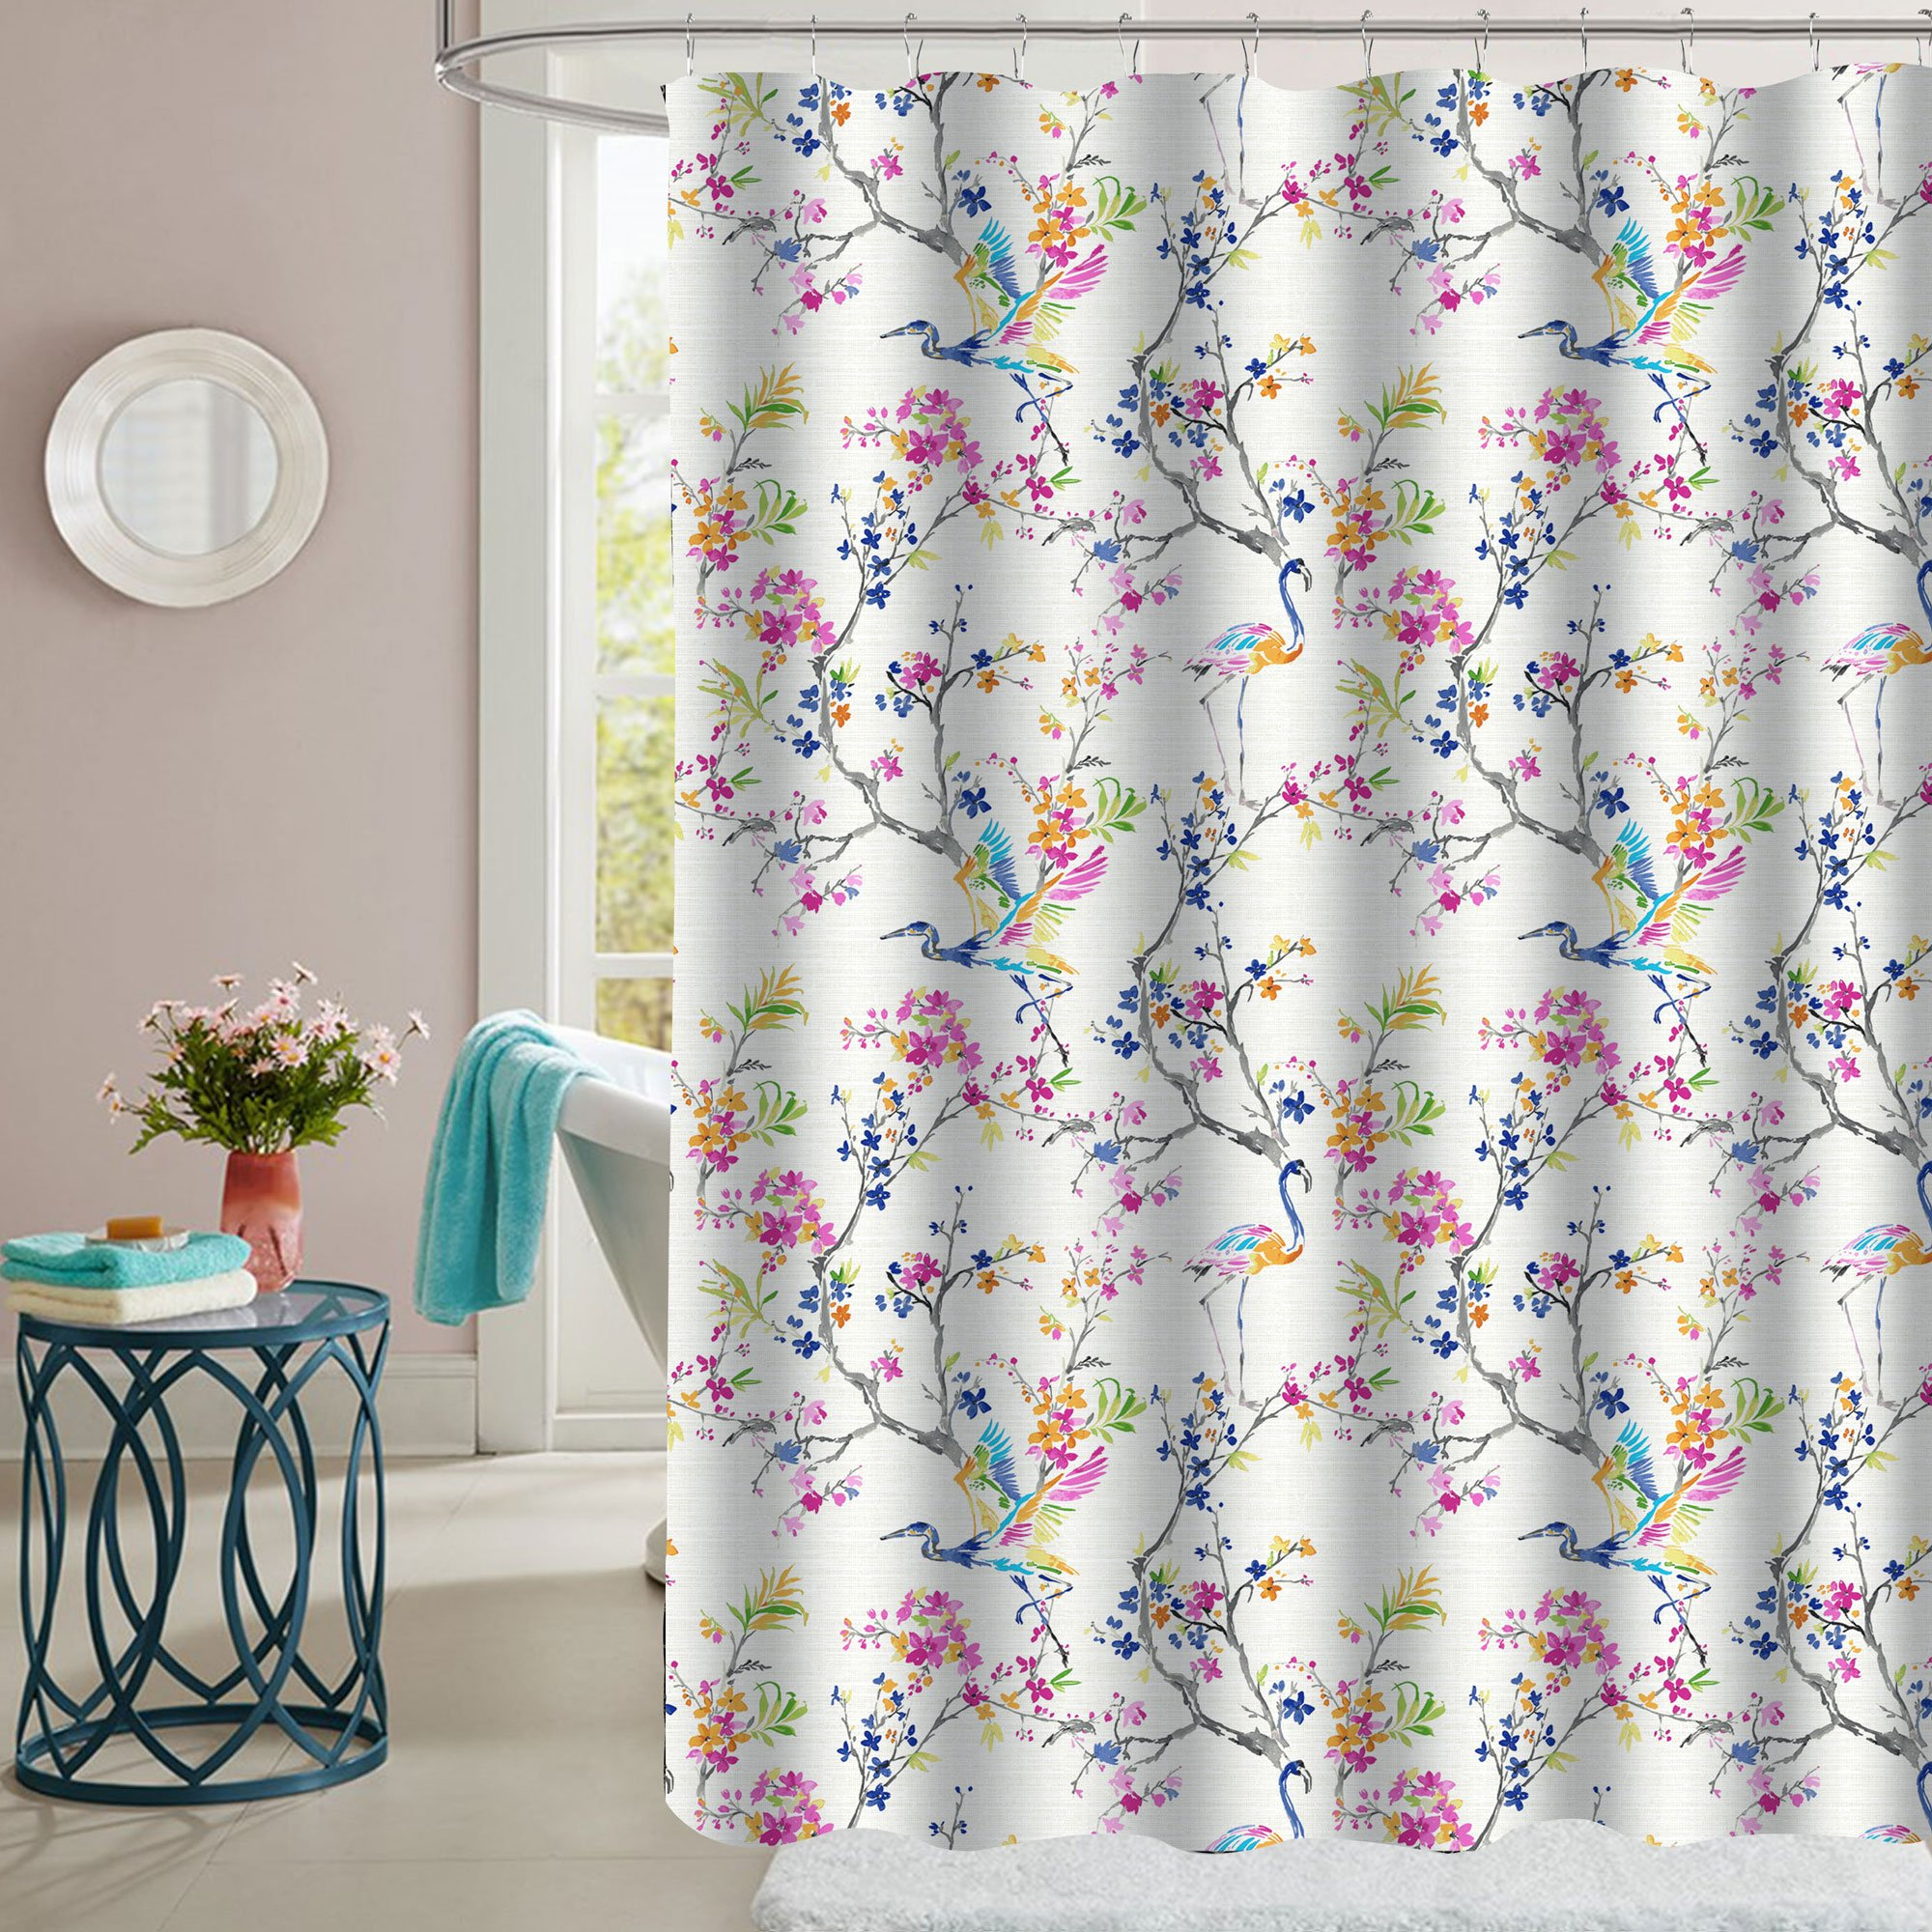 Index Of /shopify Pertaining To Newest Hudson Pintuck Window Curtain Valances (View 18 of 20)